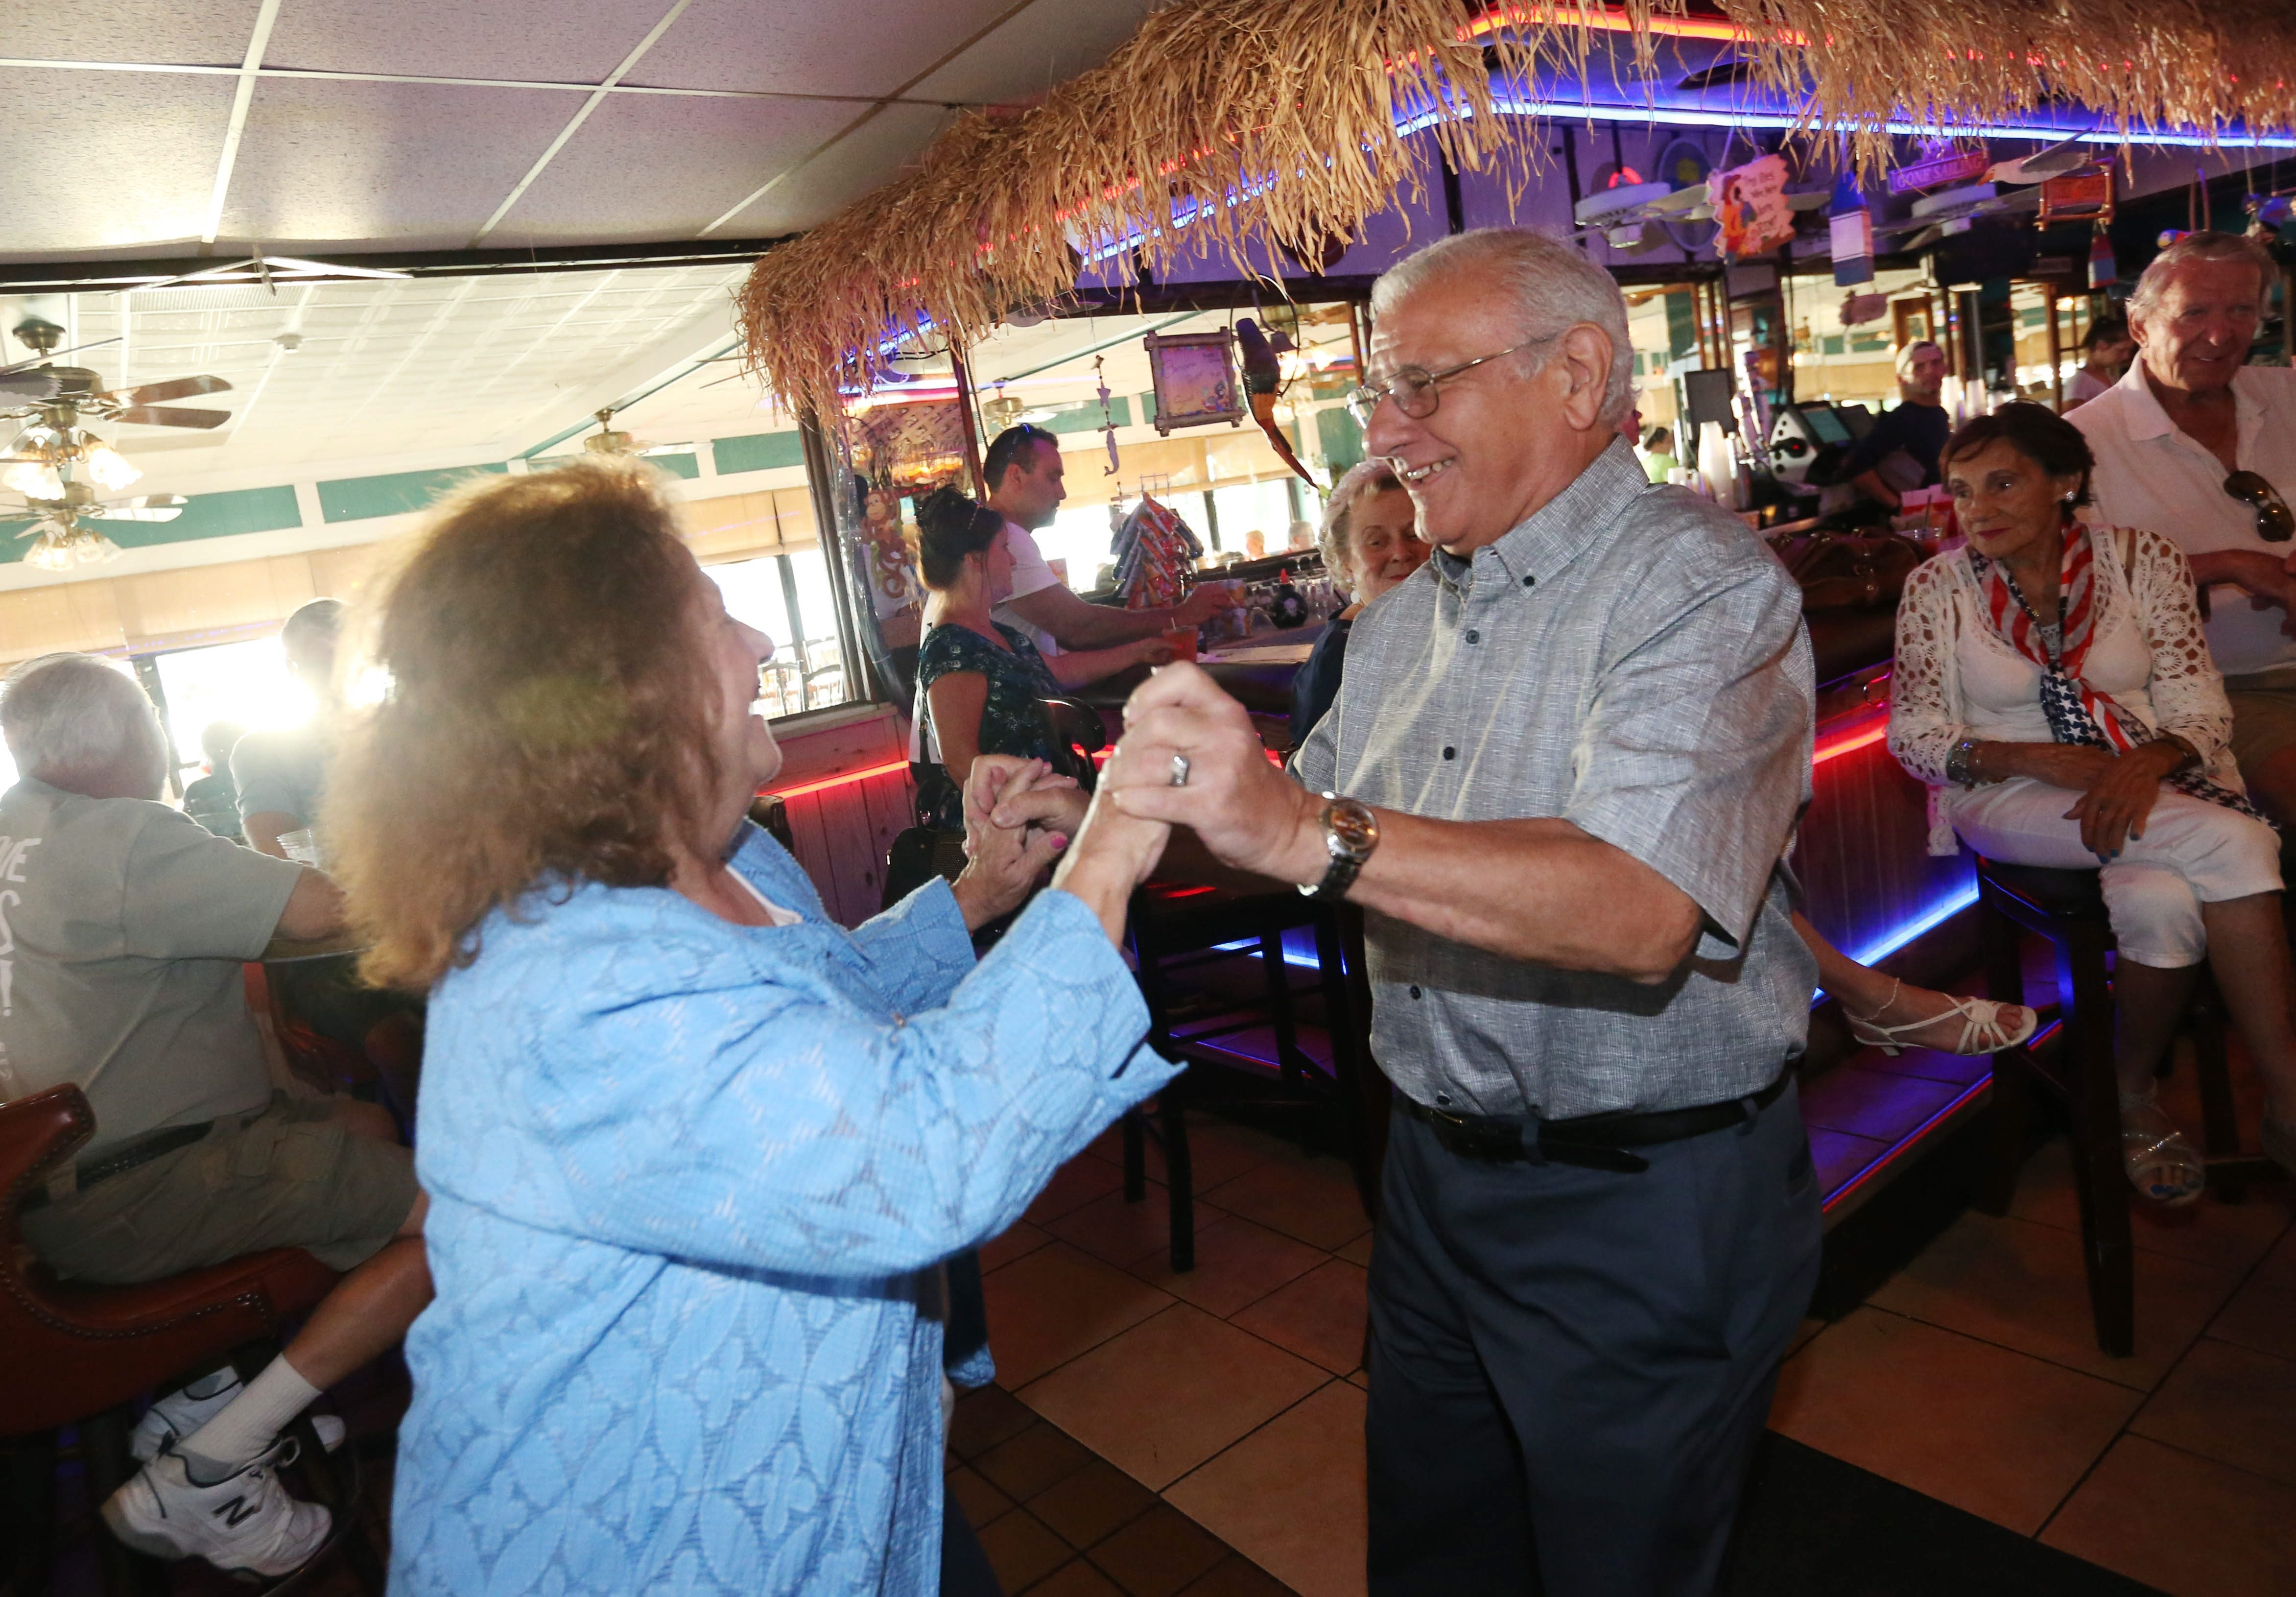 Vince and Vera Philippine of the Town of Tonawanda dance to the tunes of crooner Jack Civilietto at The Shores Waterfront Restaurant in North Tonawanda.